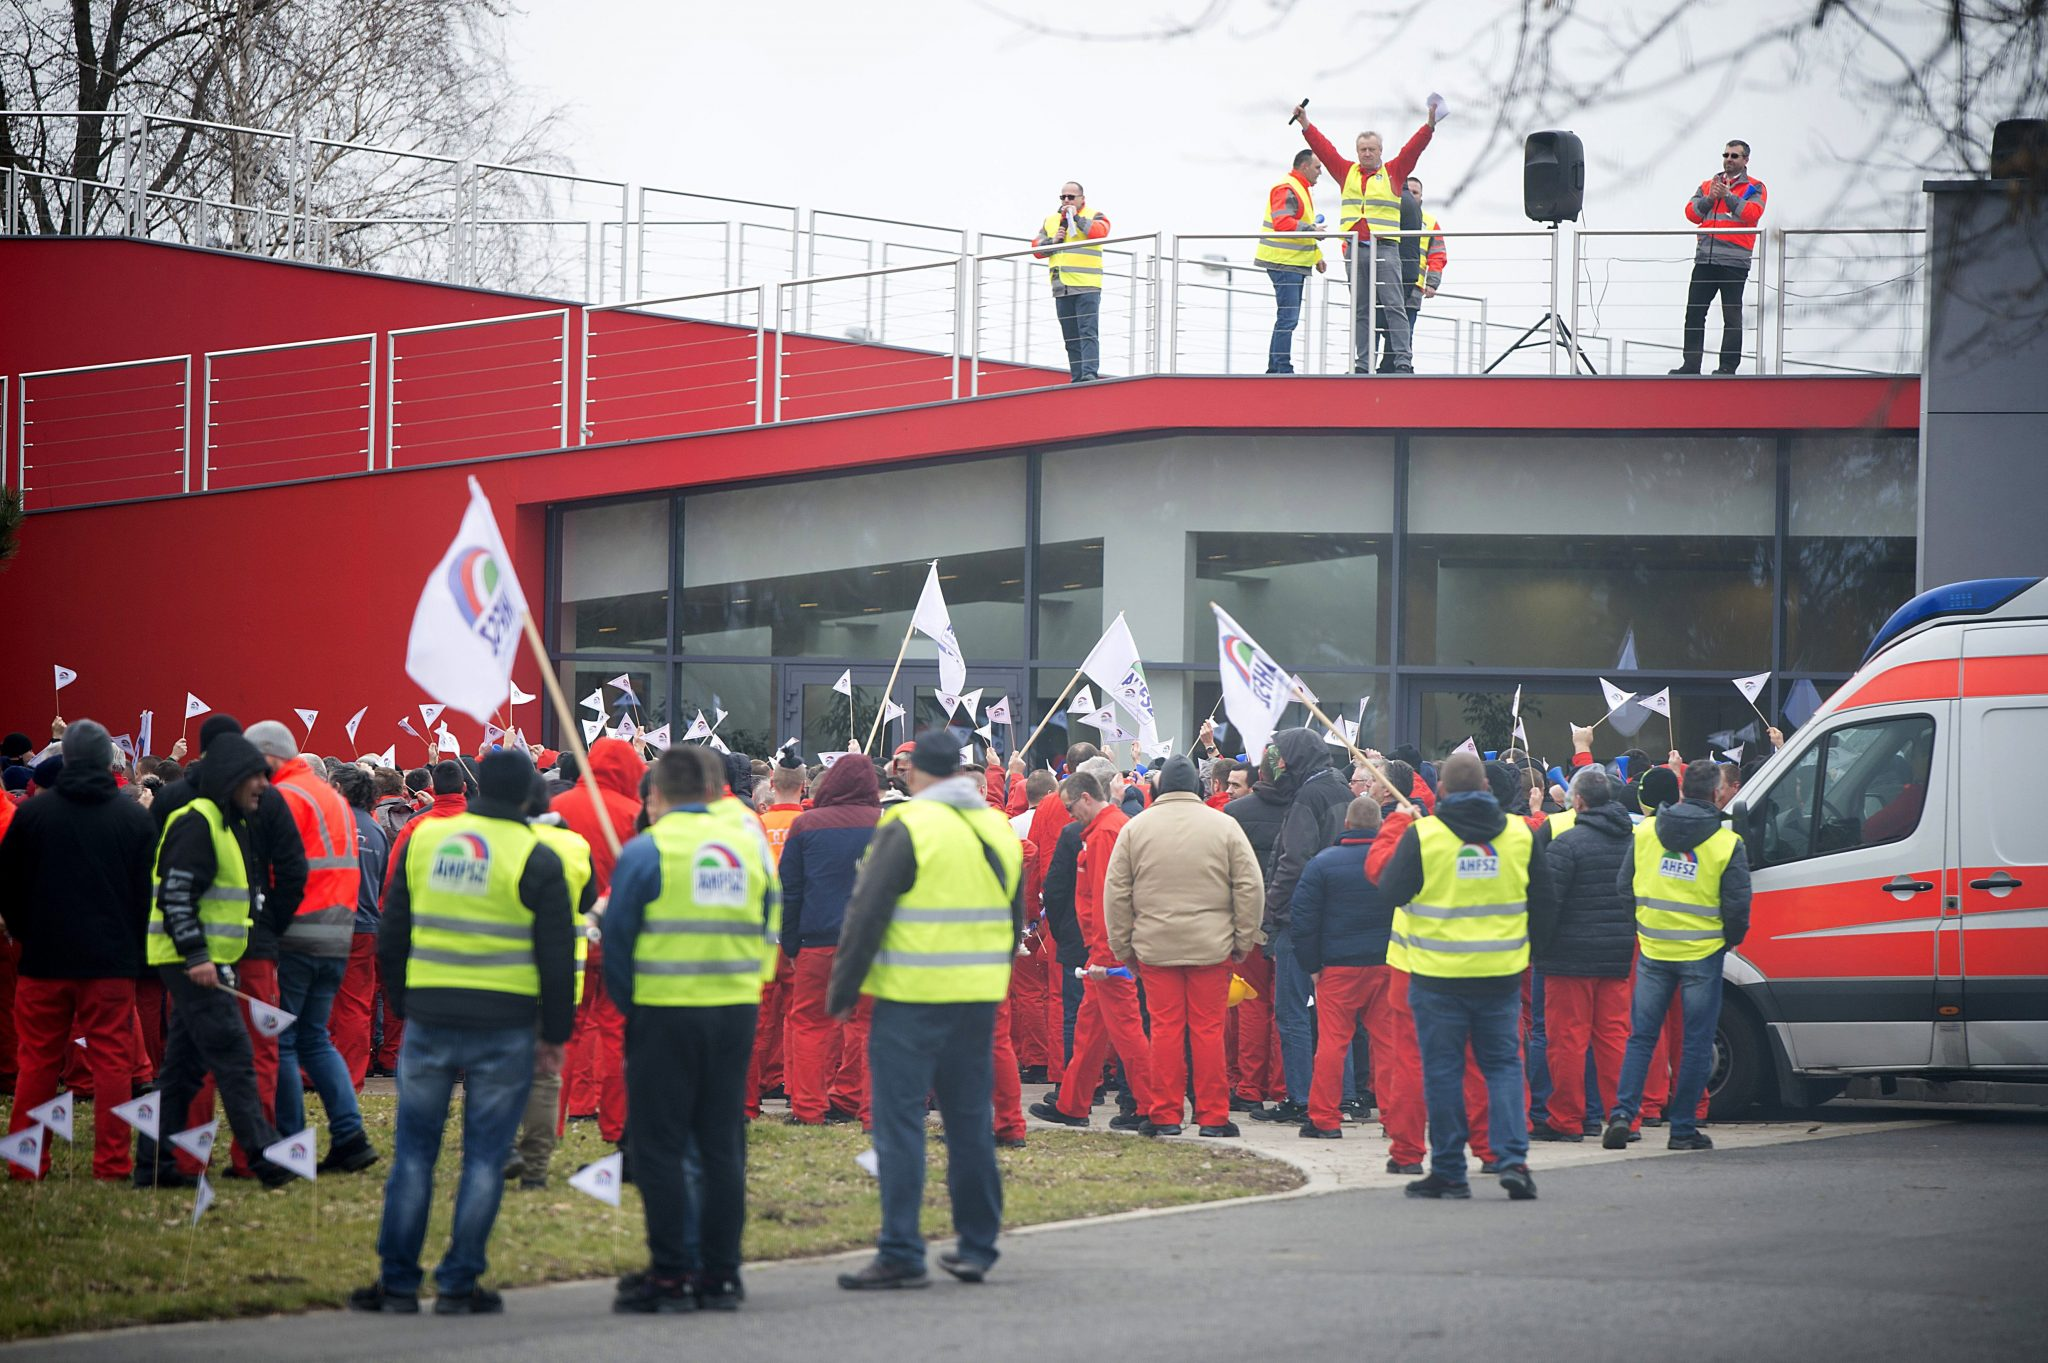 audi workers in hungary agitate for higher pay, benefits : peoples